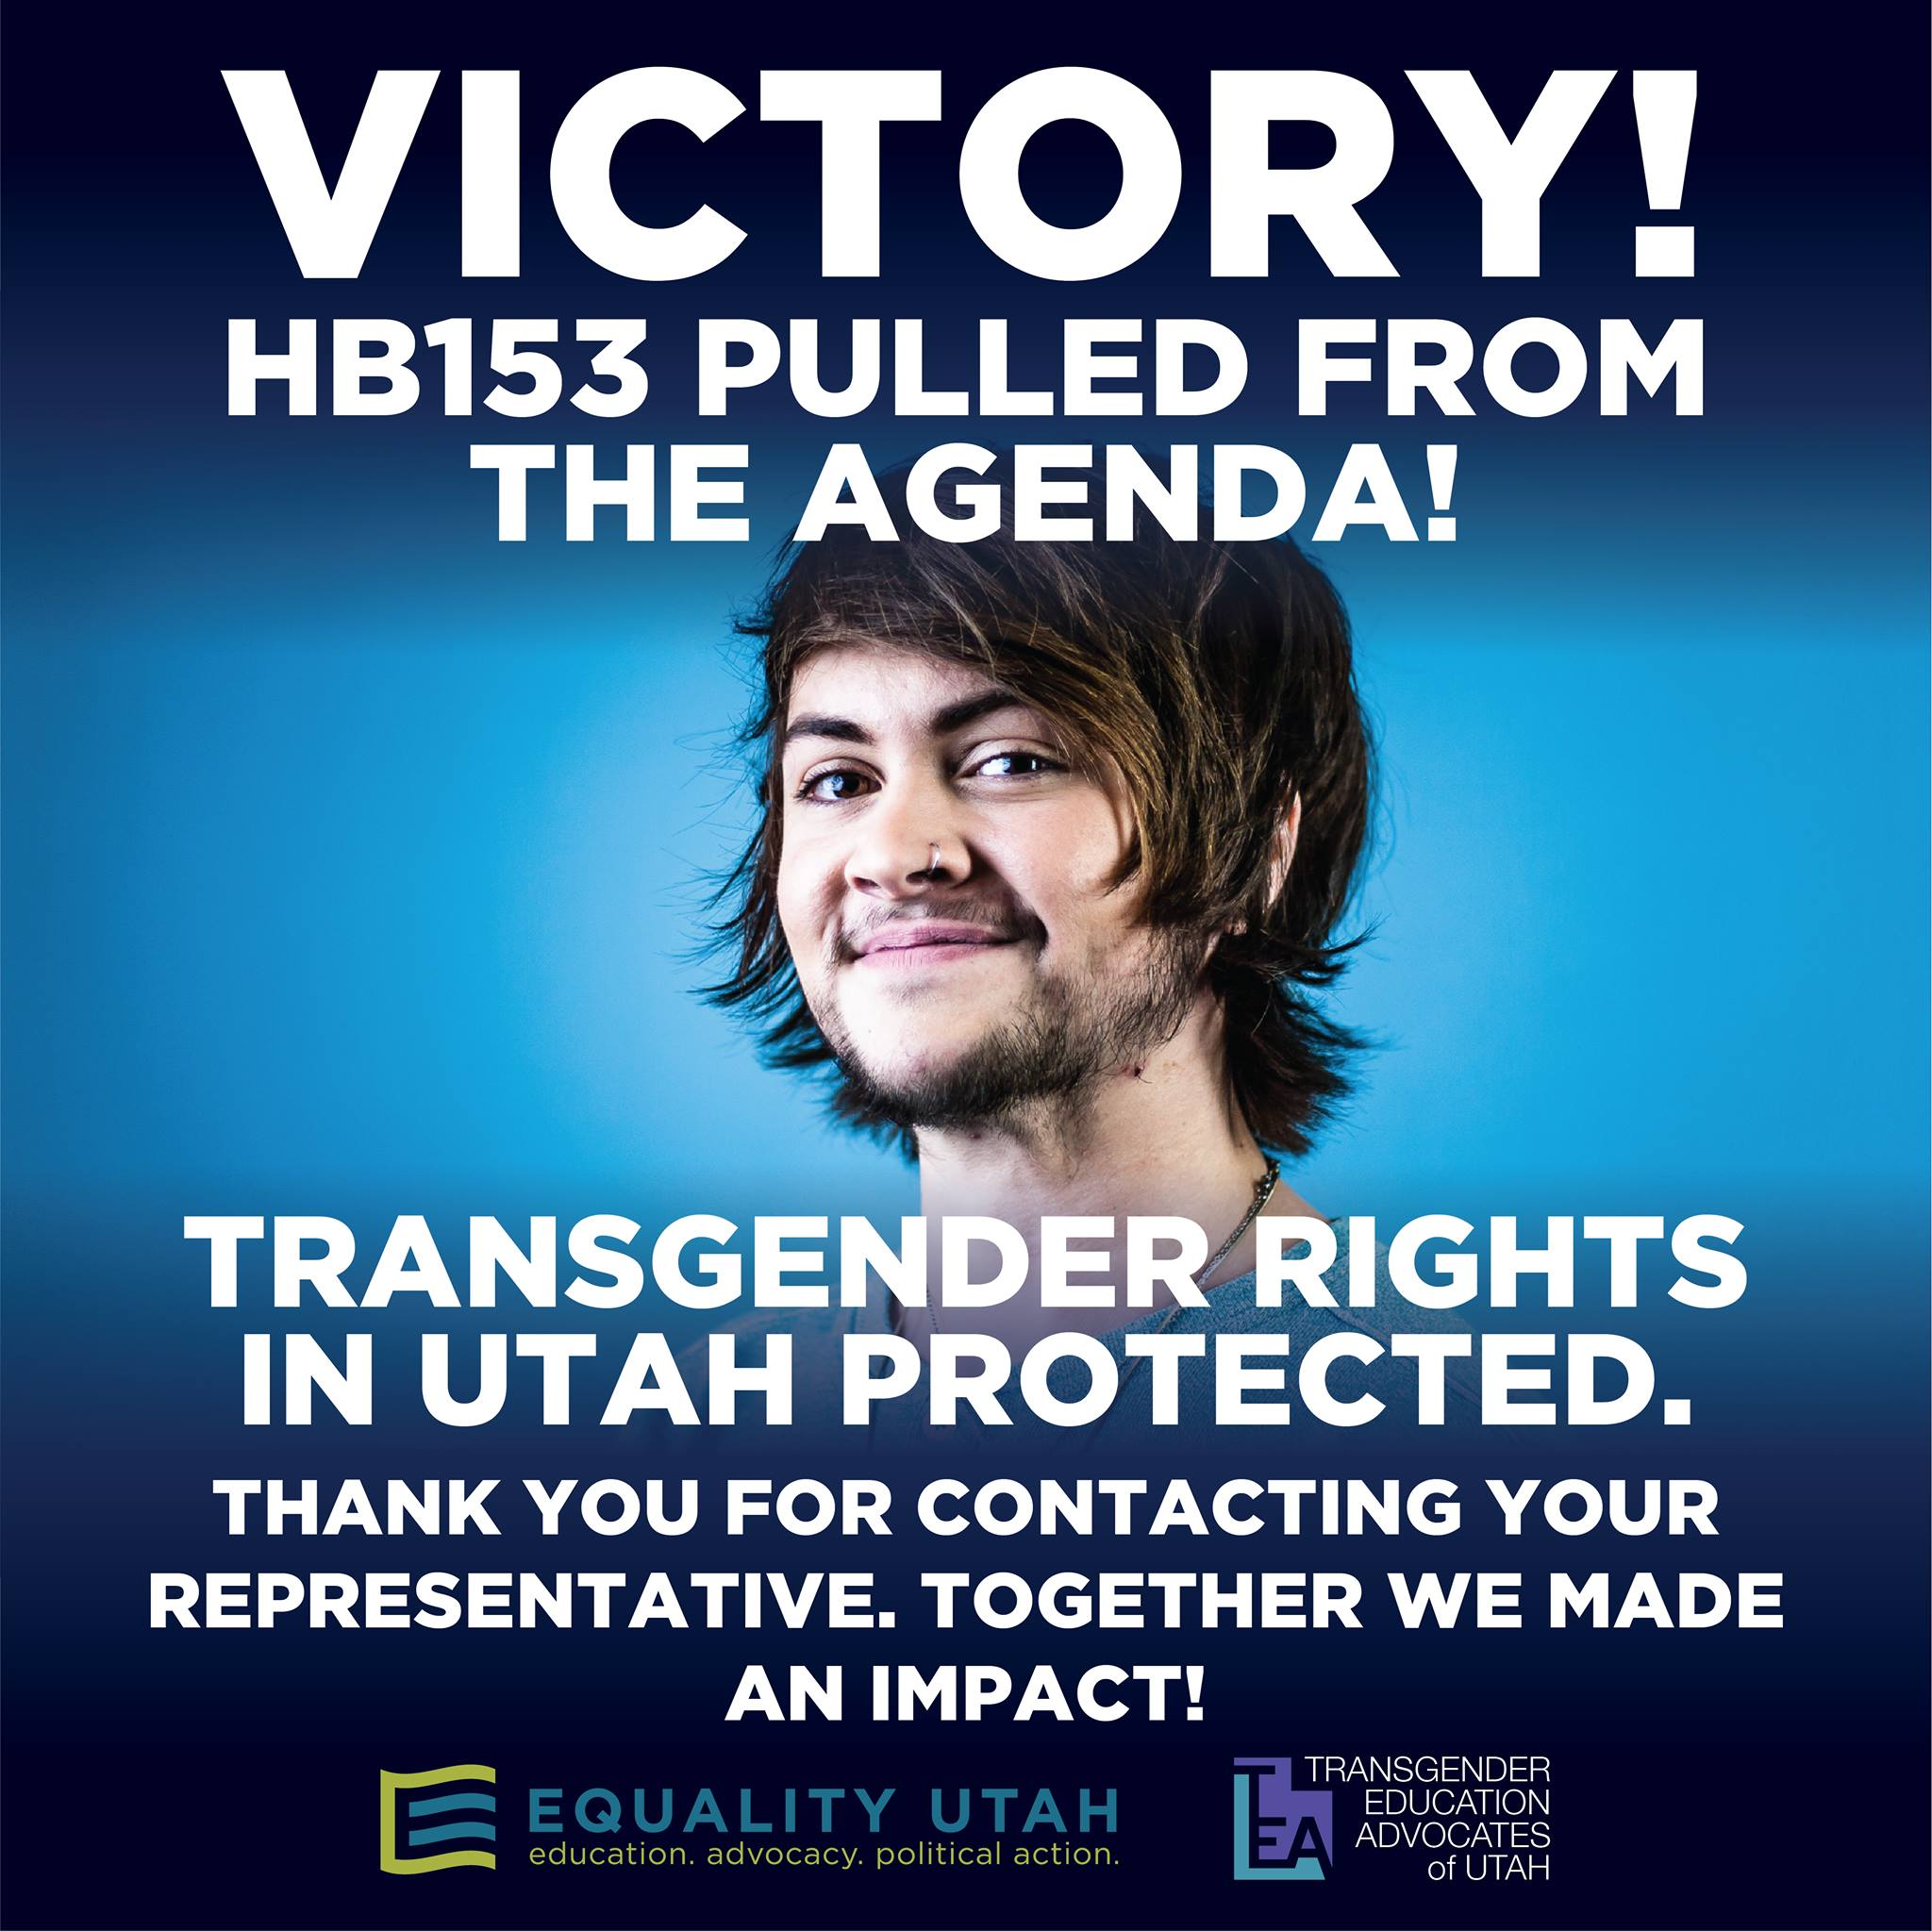 Victory graphic for HB153 being pulled from the legislative agenda, protecting transgender rights in Utah